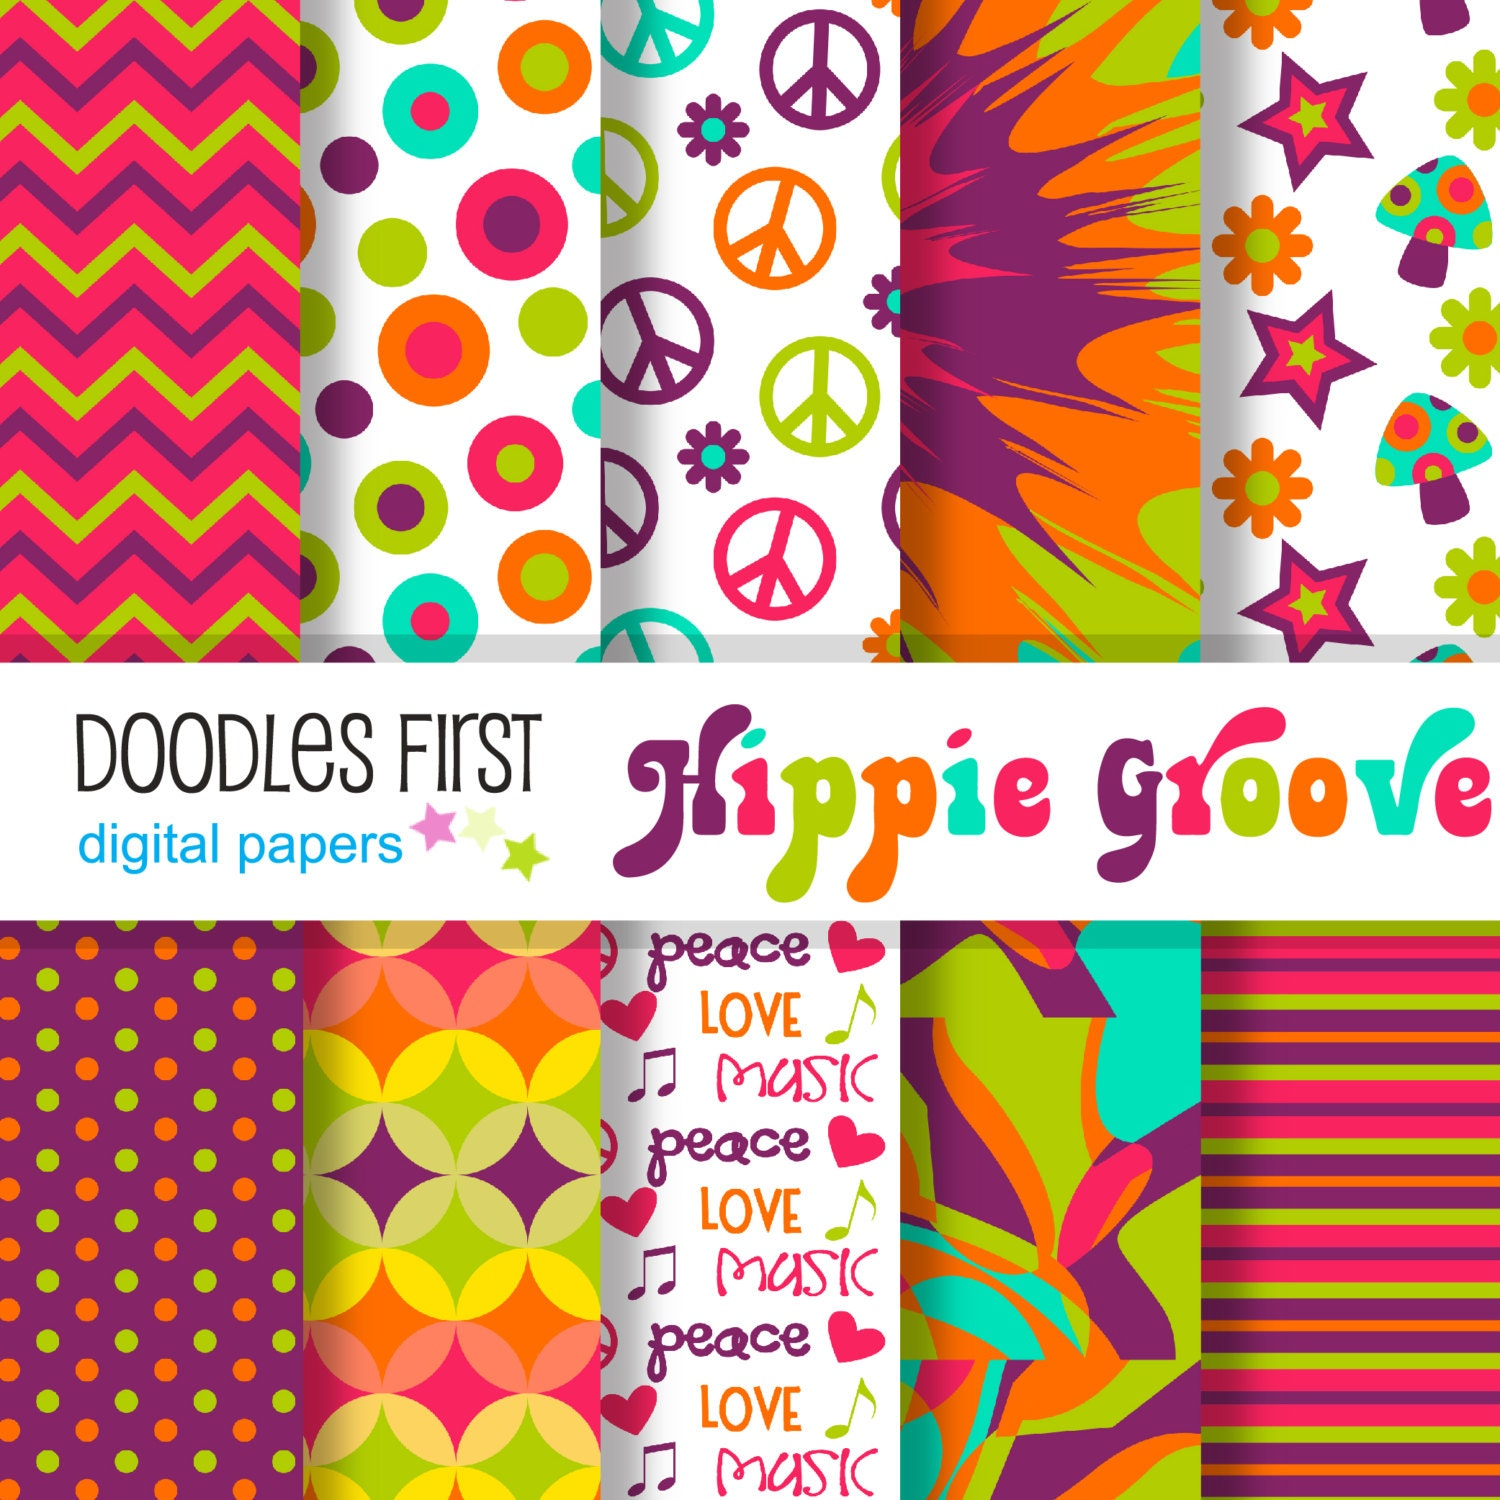 Hippie groove digital paper pack includes 10 for scrapbooking hippie groove digital paper pack includes 10 for scrapbooking paper crafts jeuxipadfo Choice Image